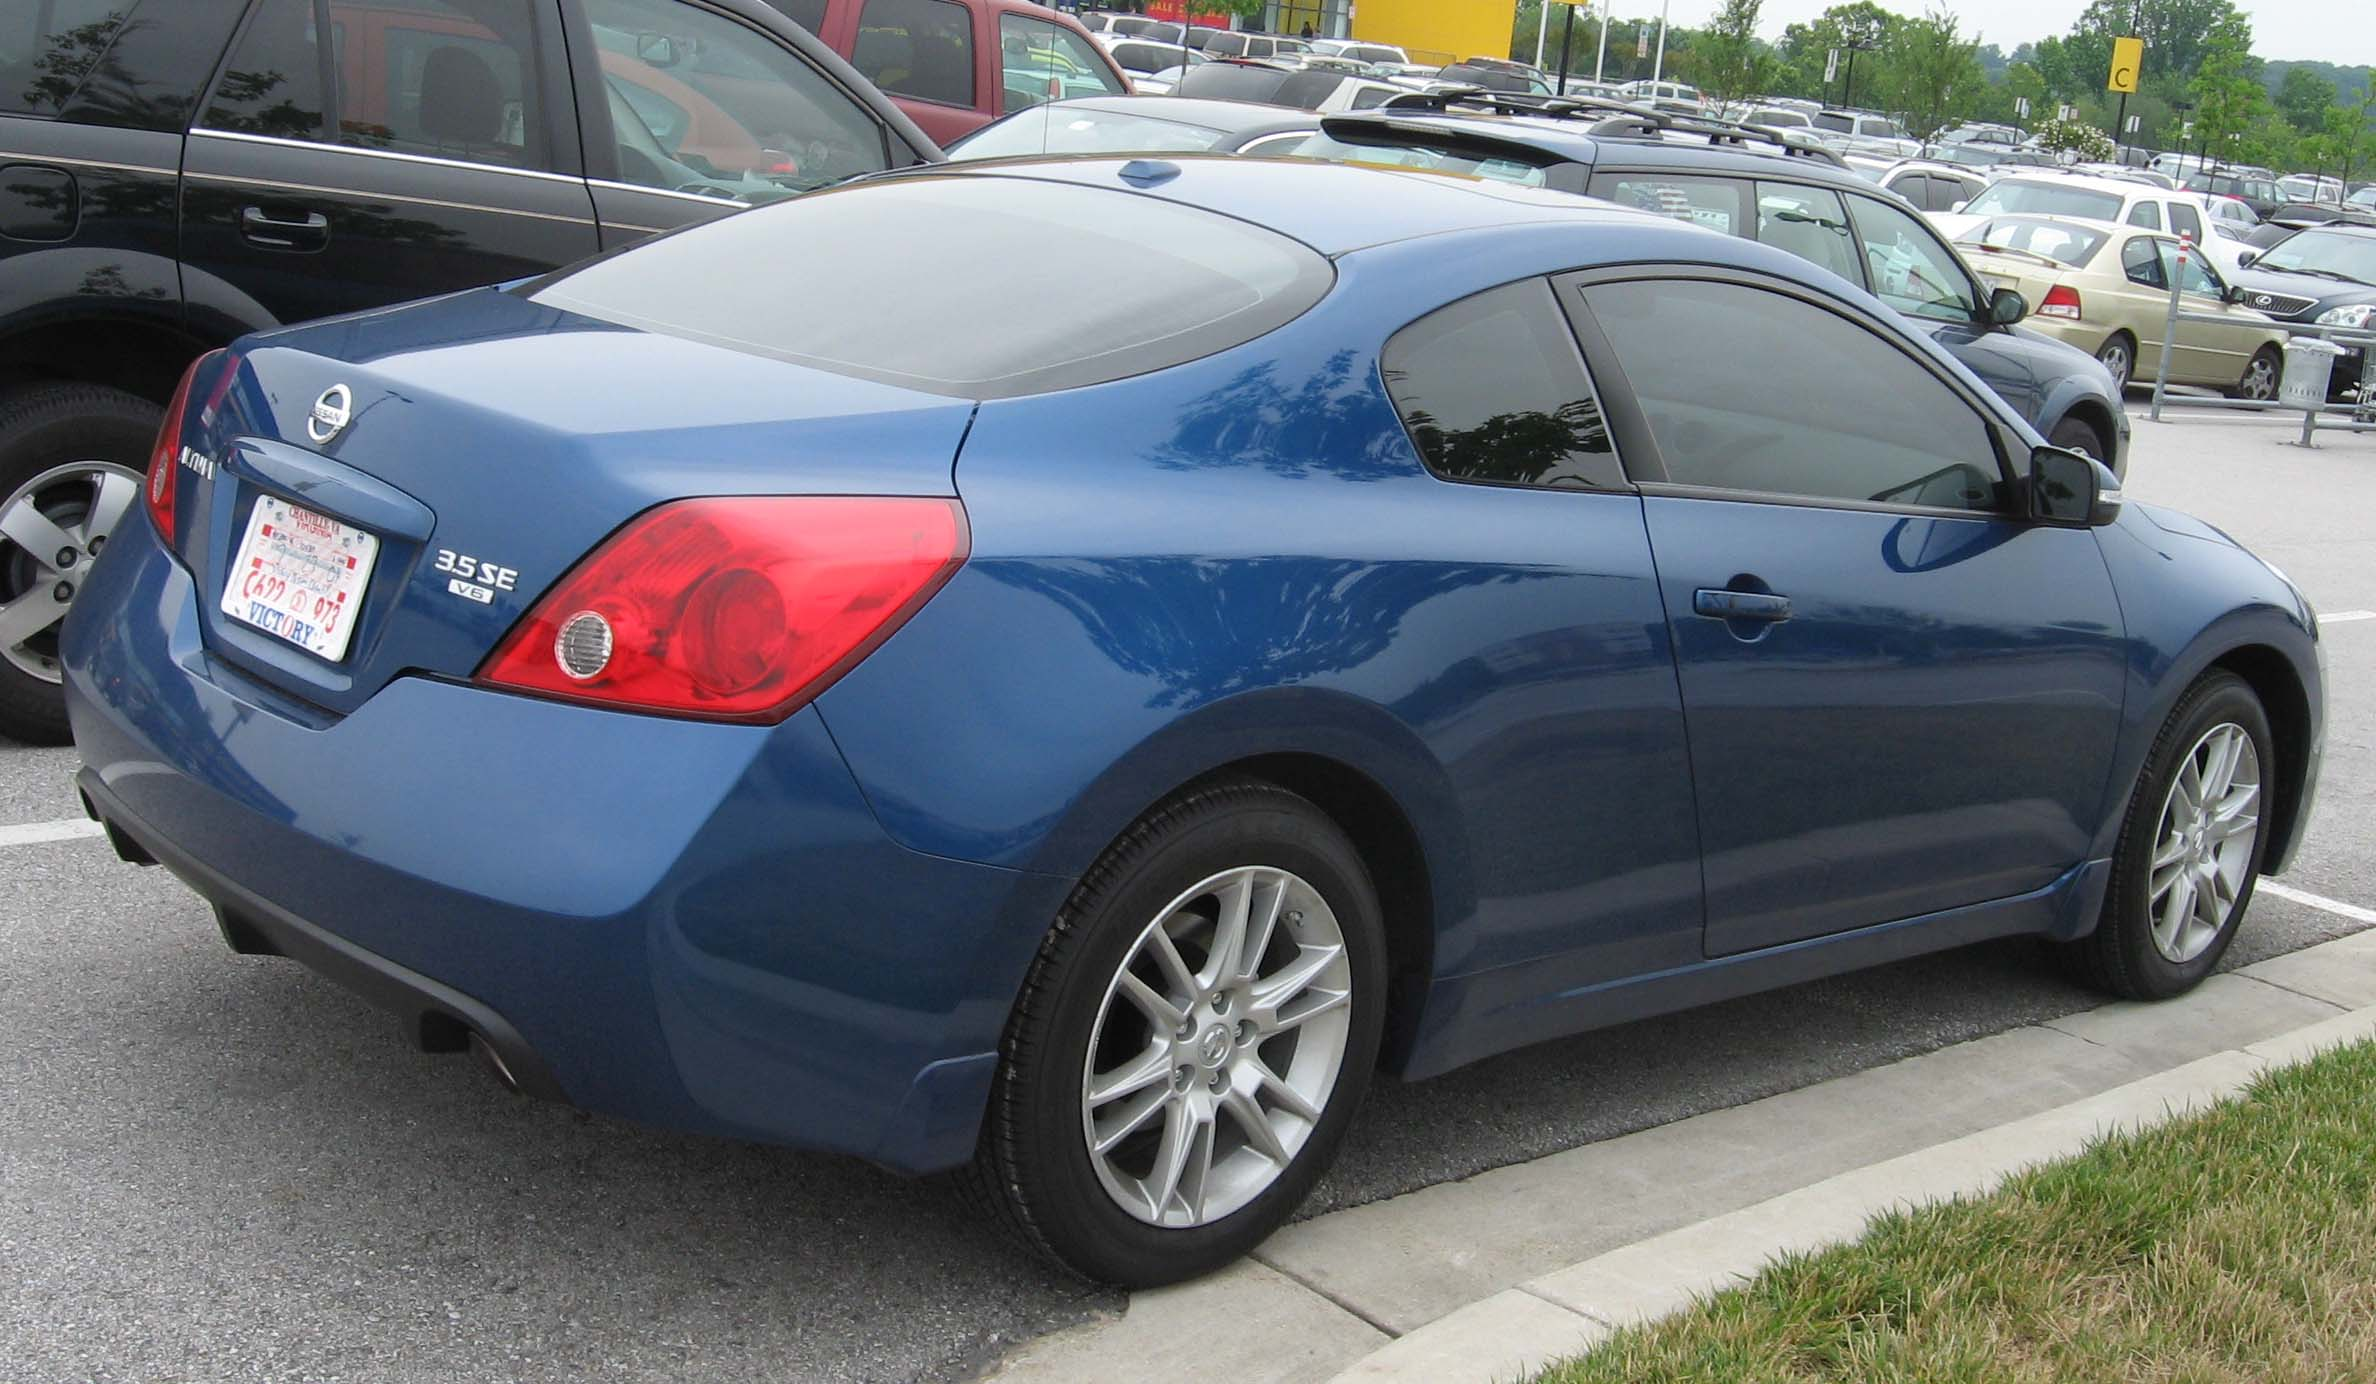 File:2008-Nissan-Altima-Coupe-Rear.jpg - Wikimedia Commons